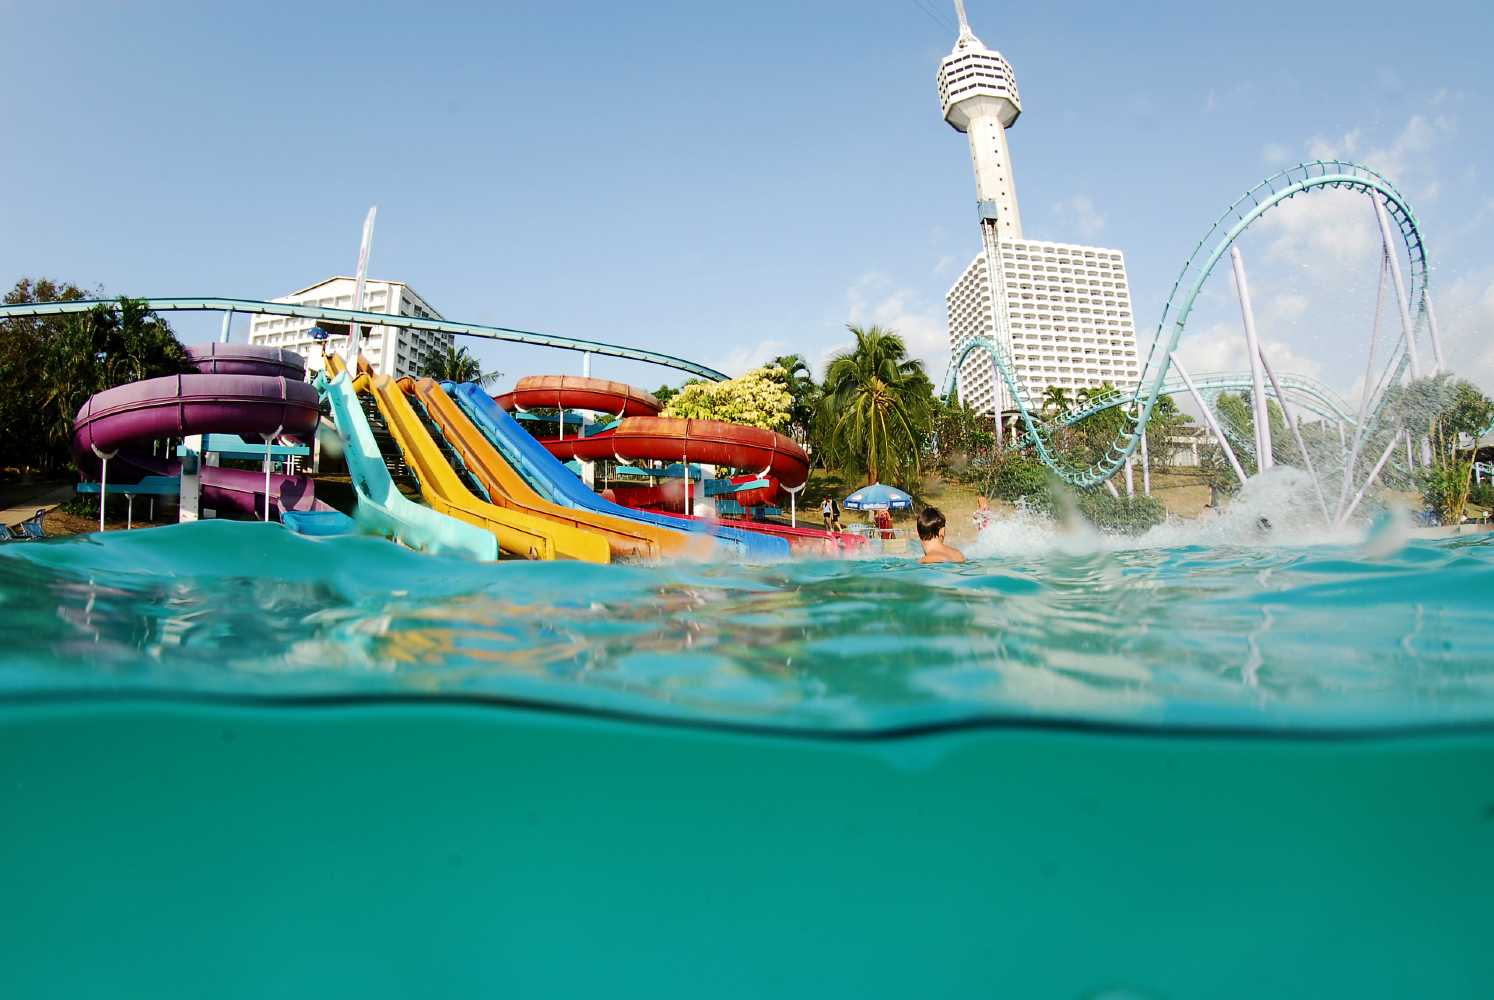 Water park with slides in Pattaya